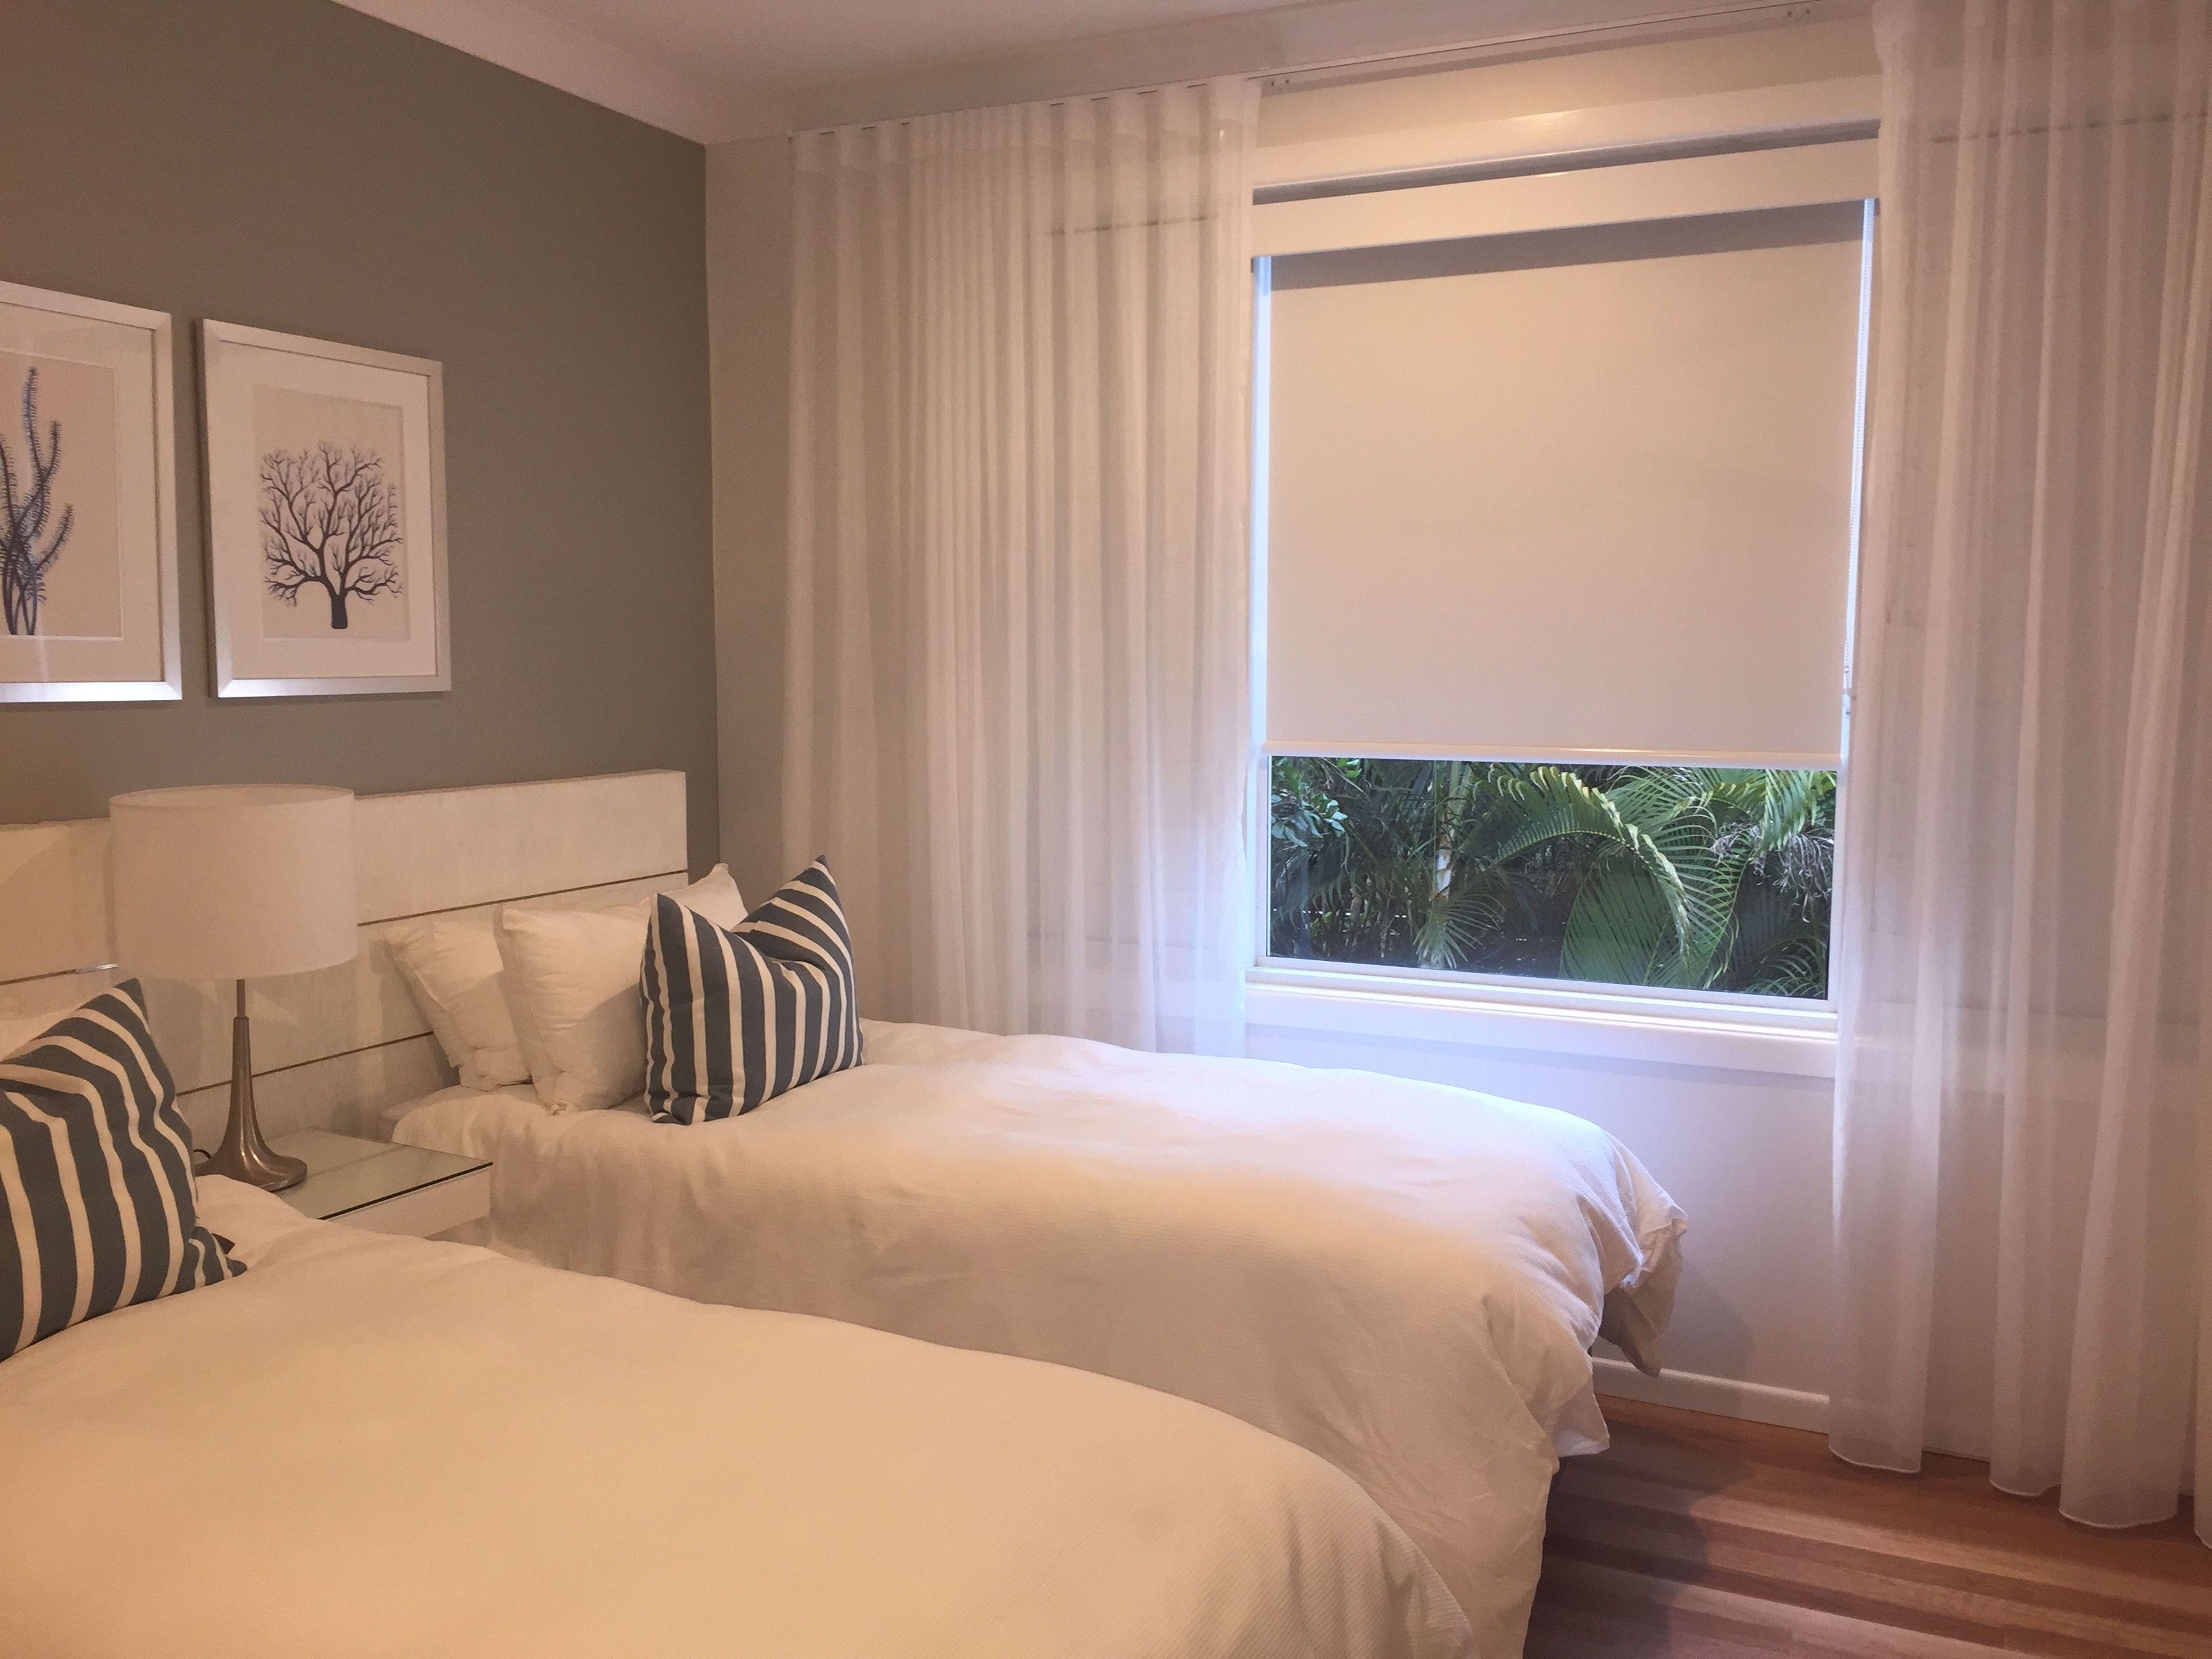 White Blockout Roller Blinds And Matching Pelmet With White Sheer S Wave Curtains To Soften Th In 2020 S Wave Curtains Curtains With Blinds Sheers Curtains Living Room